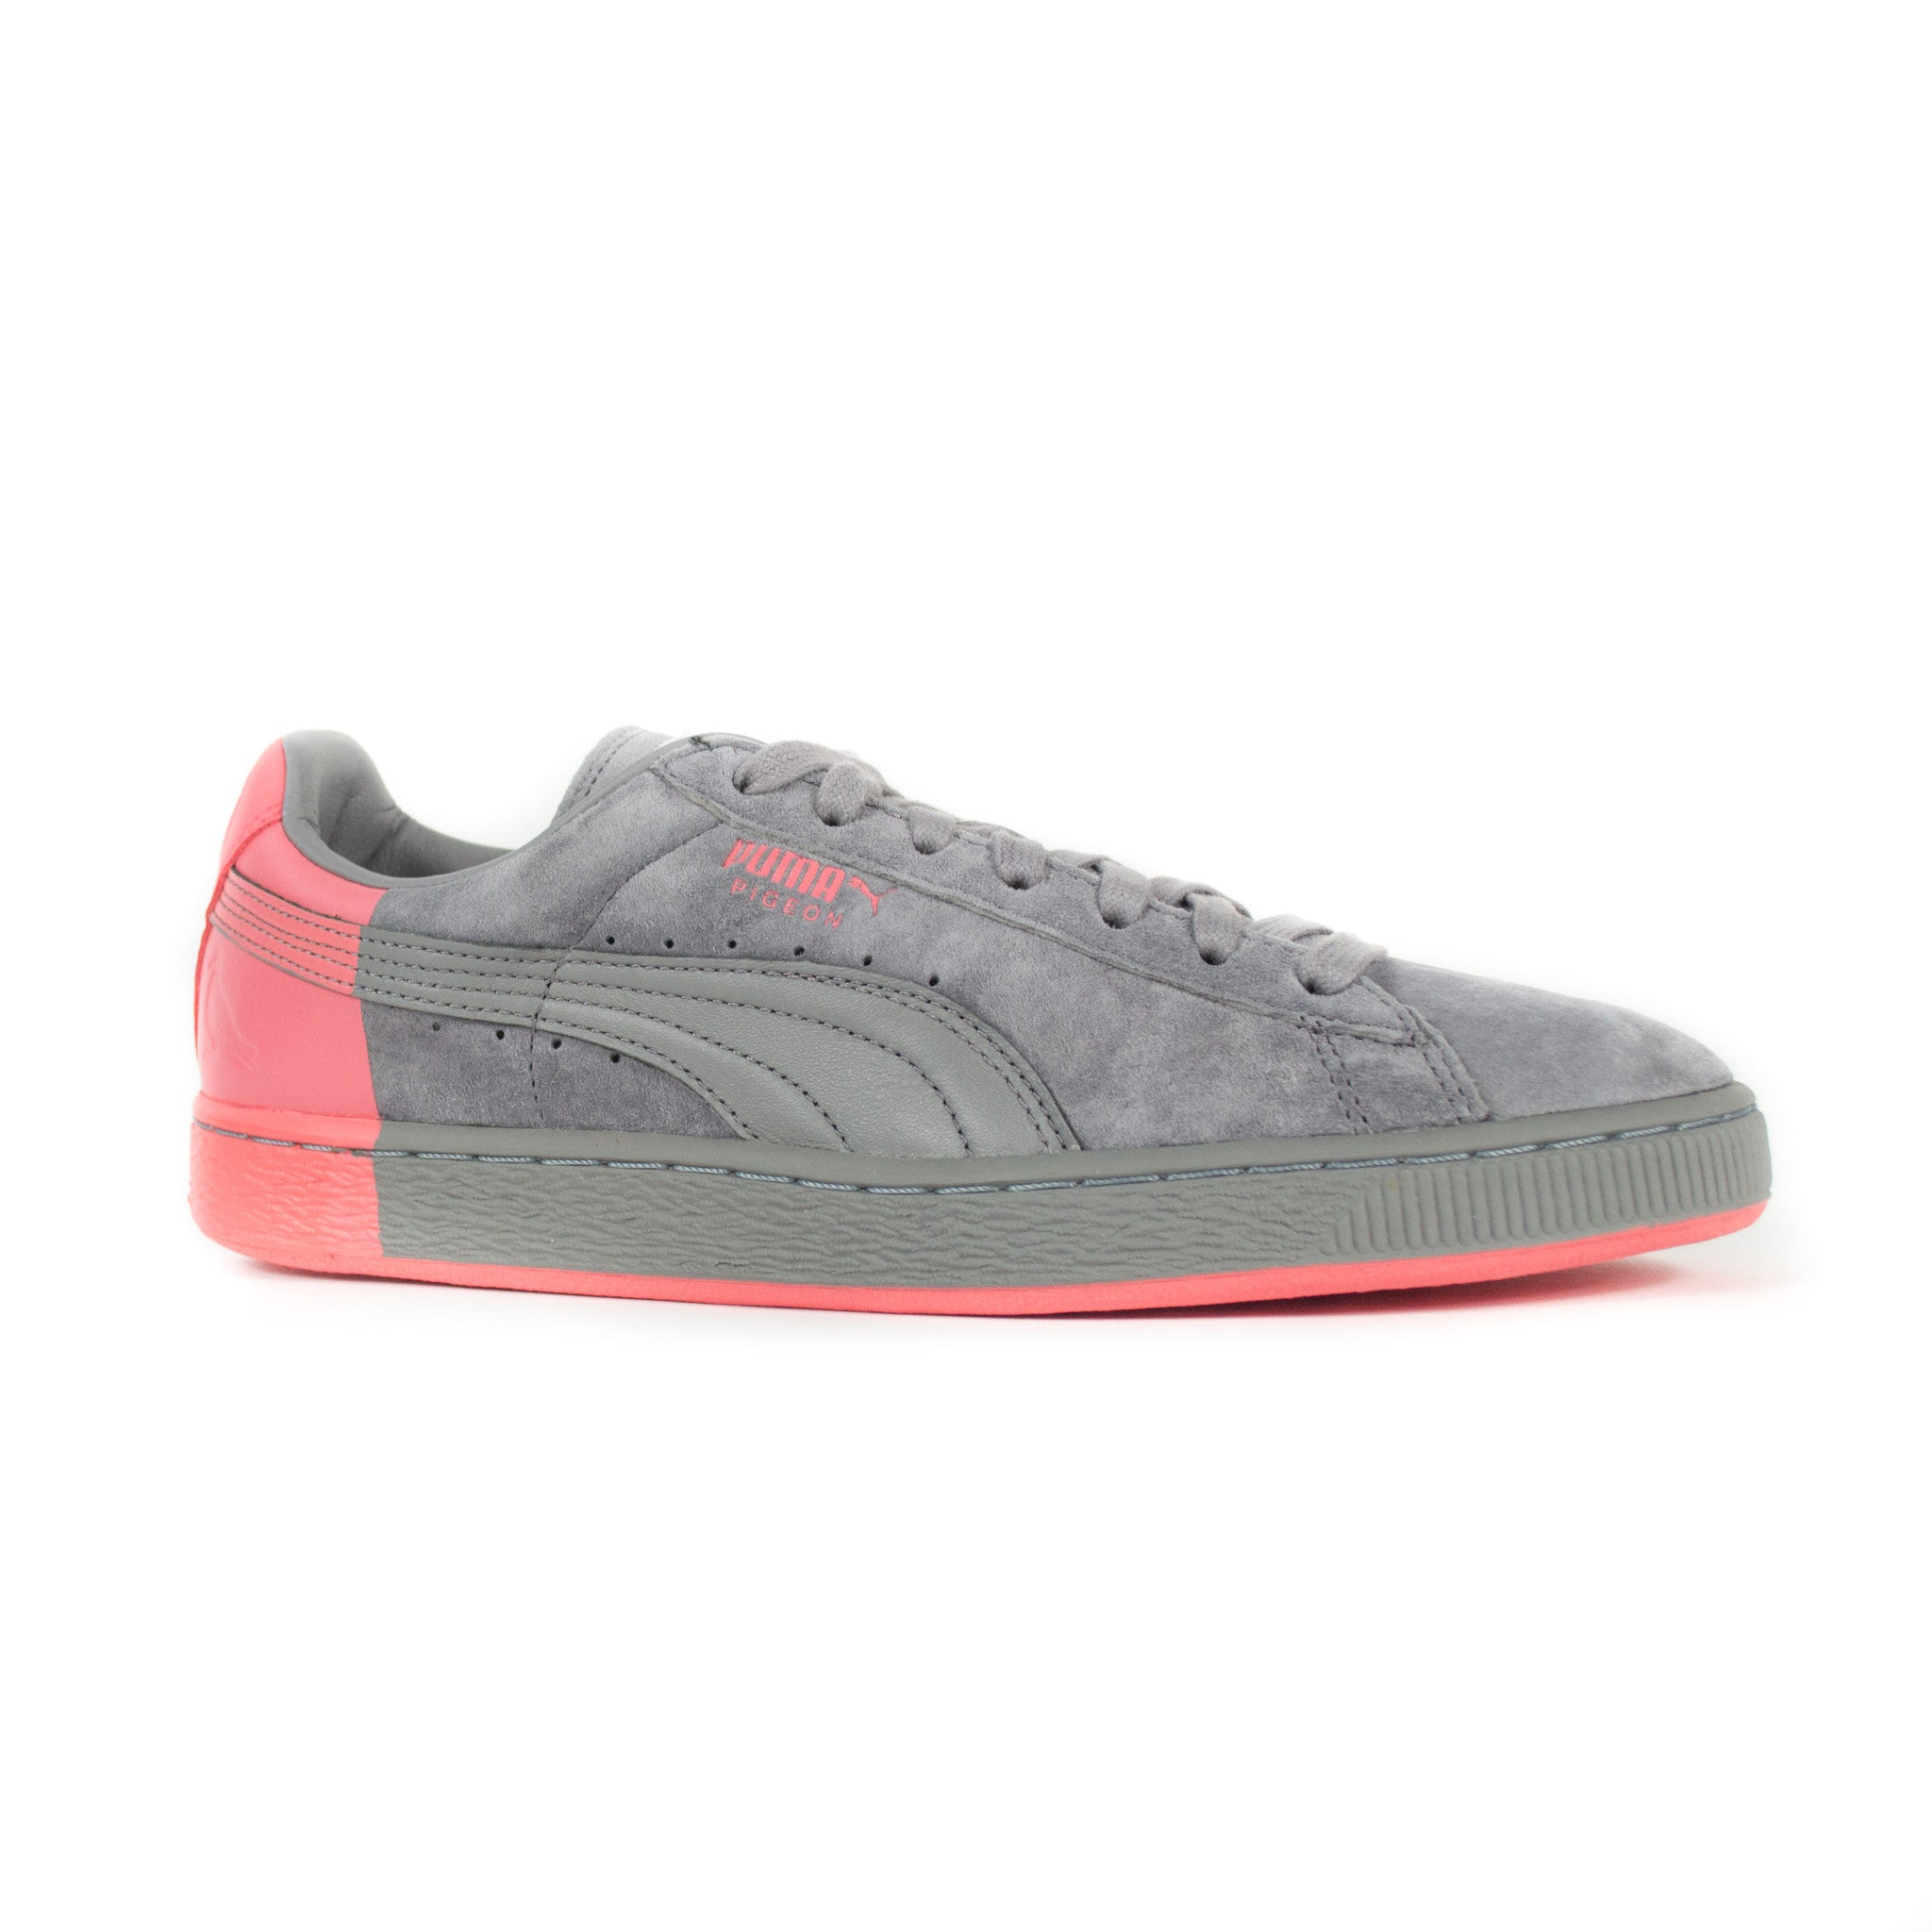 Puma Suede Classic x Staple Pigeon Frost Grey